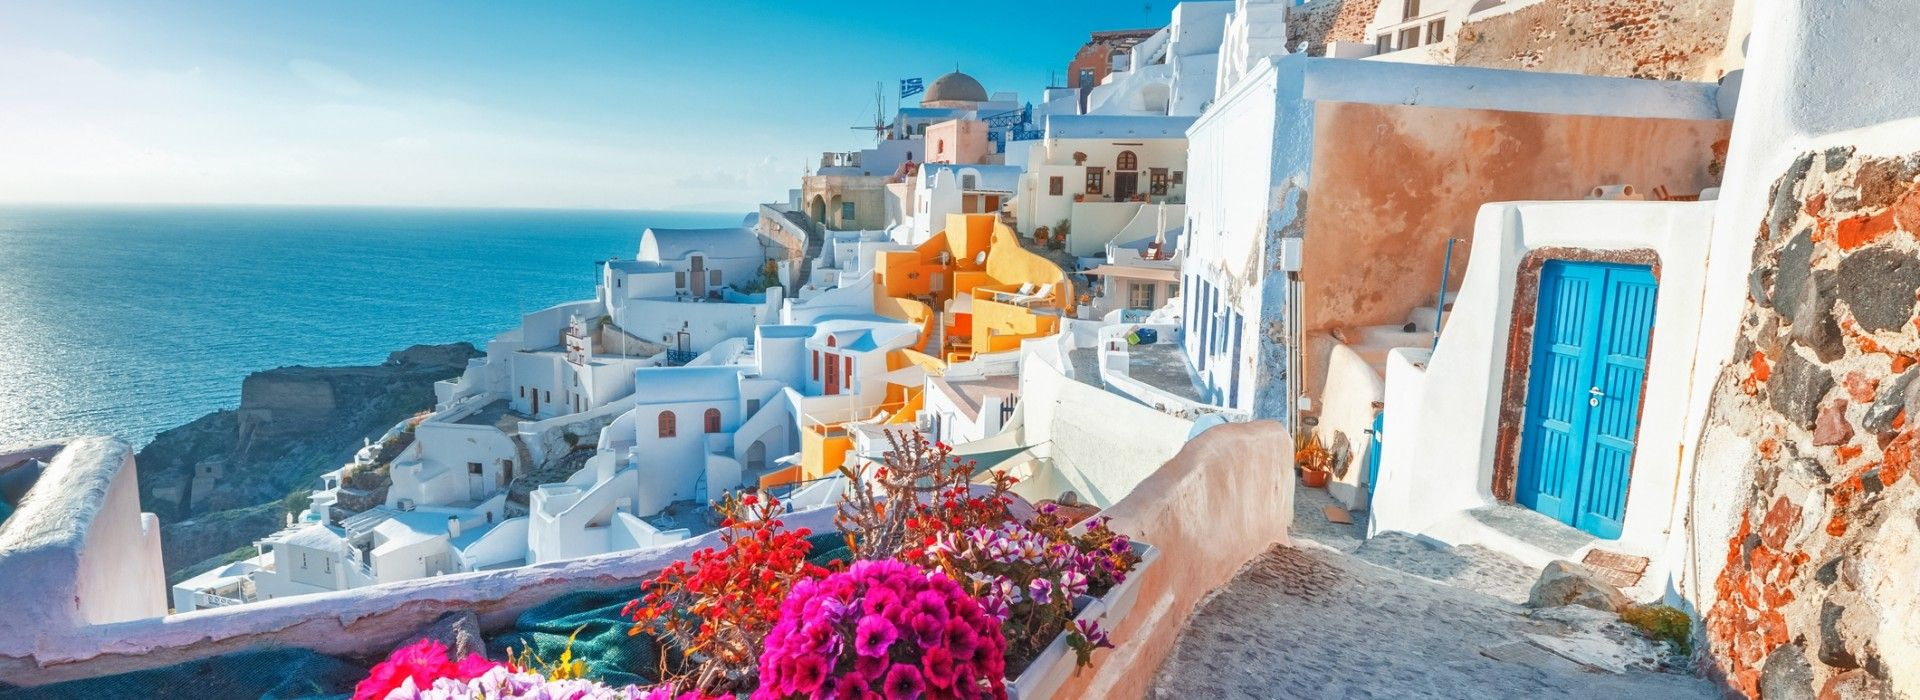 Countryside and village visits Tours in Mediterranean